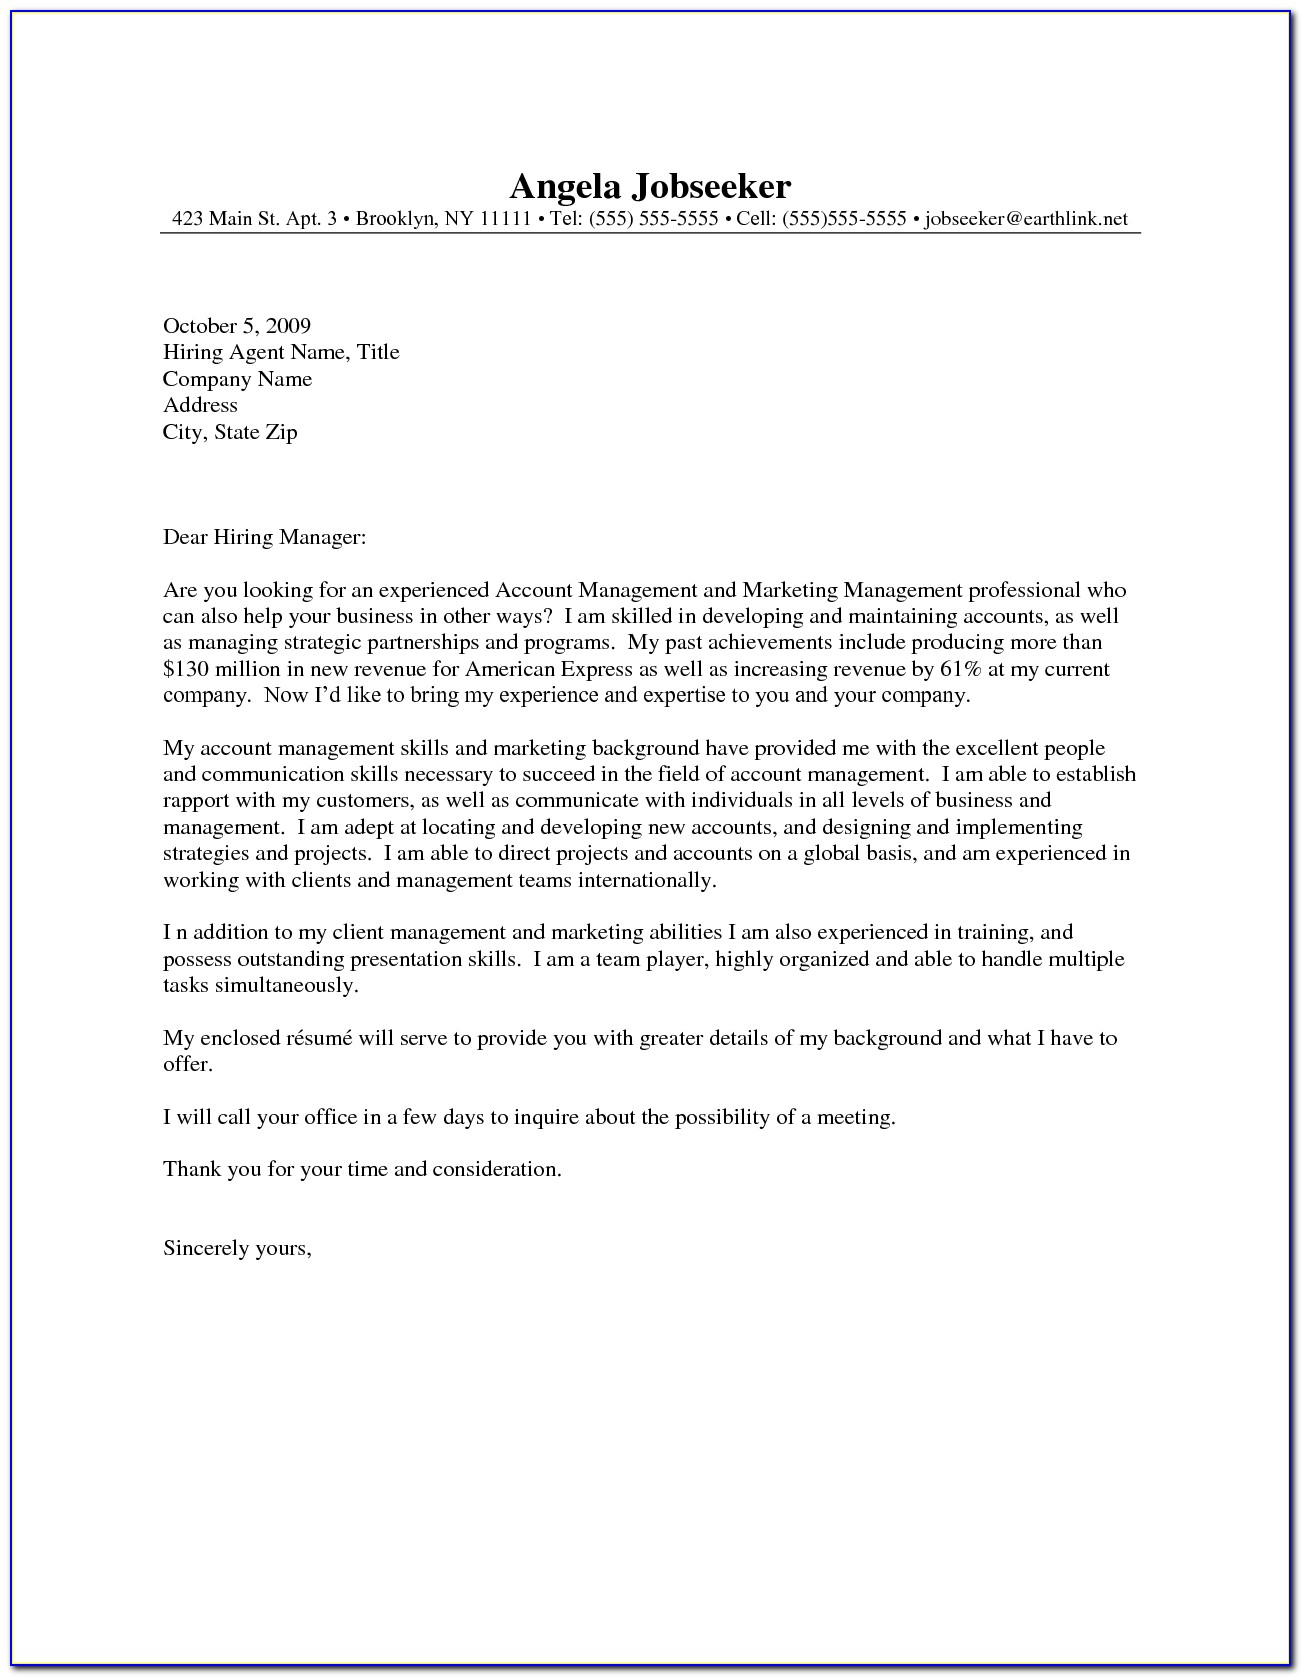 Free Resume And Cover Letter Templates Downloads